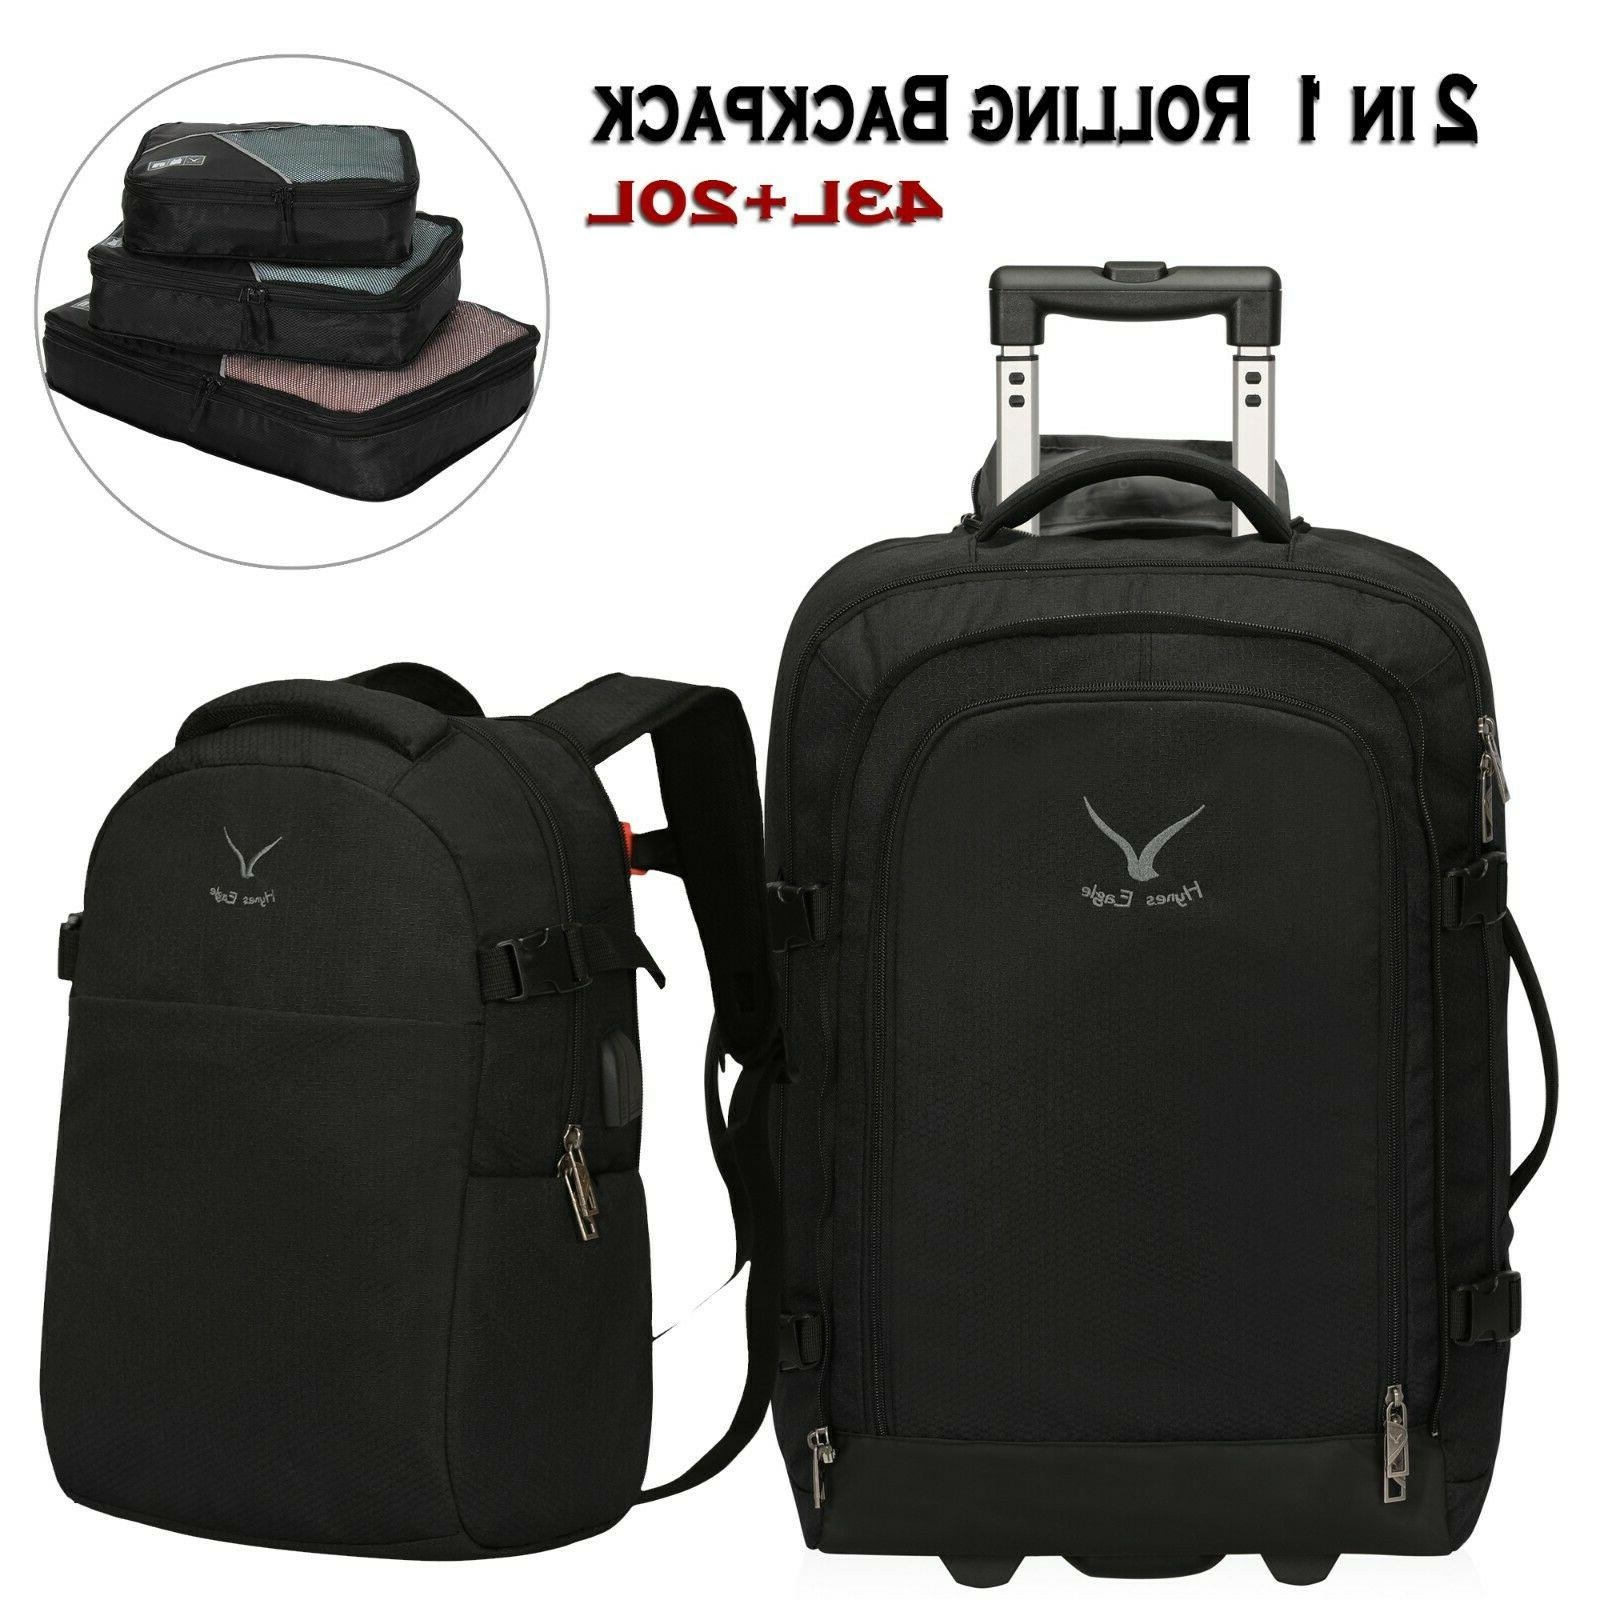 2 in 1 travel rolling backpack carry